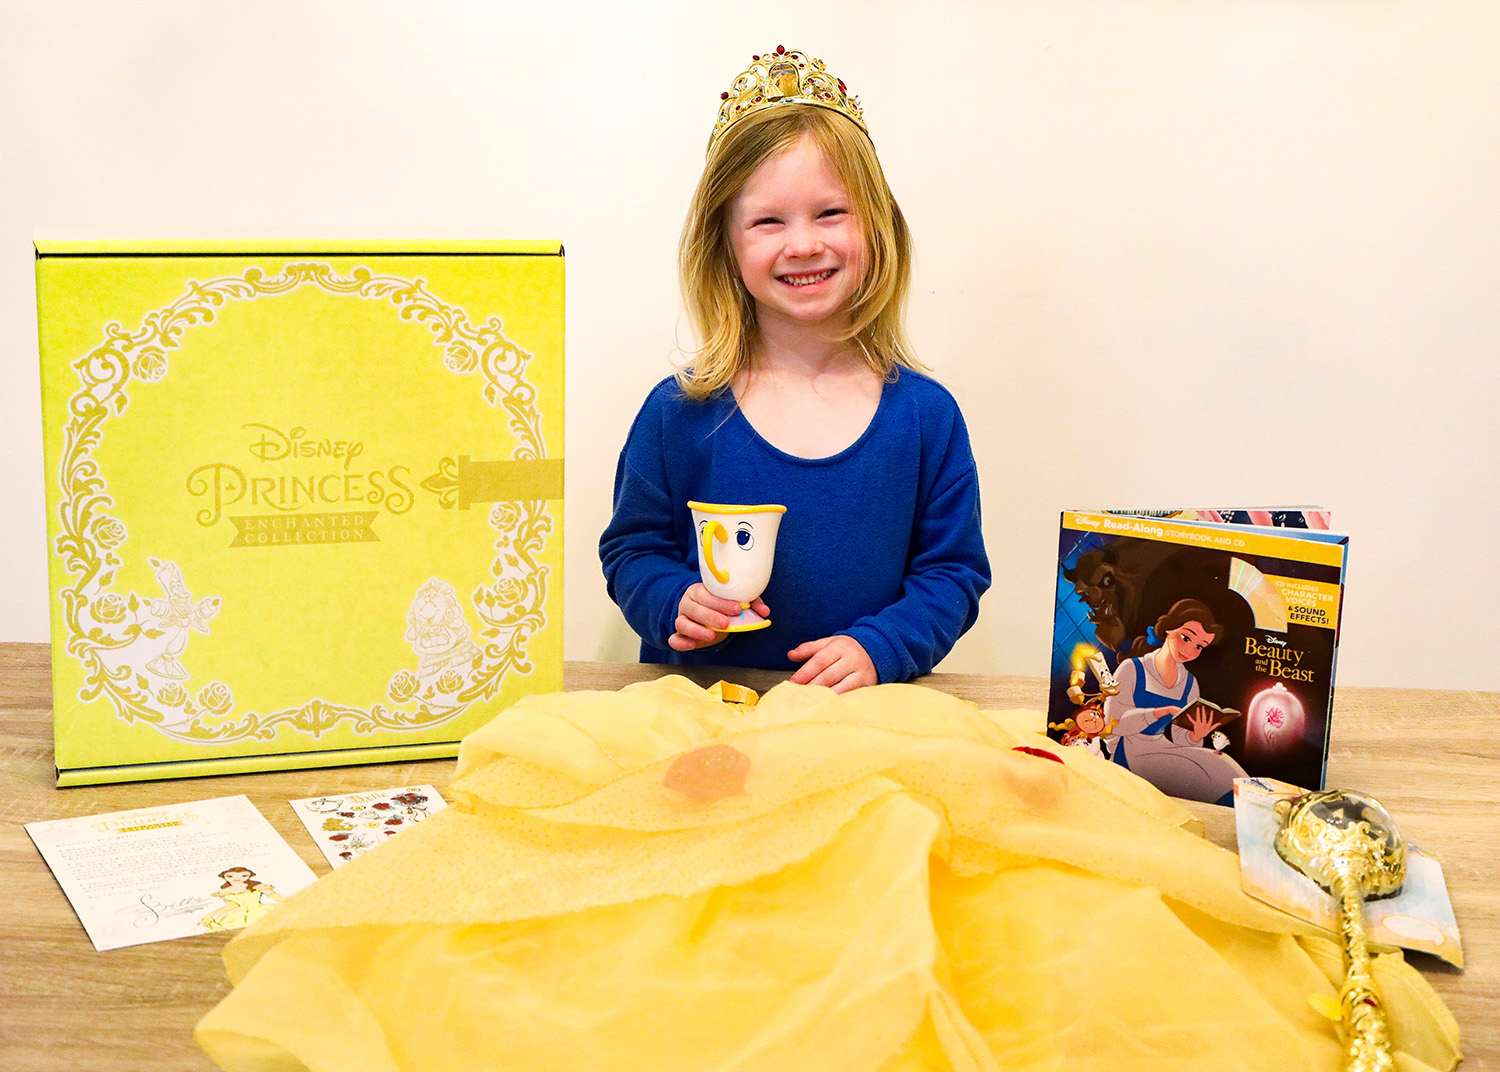 Want to know what's inside the new Disney Princess Subscription Box? This article shows every detail!